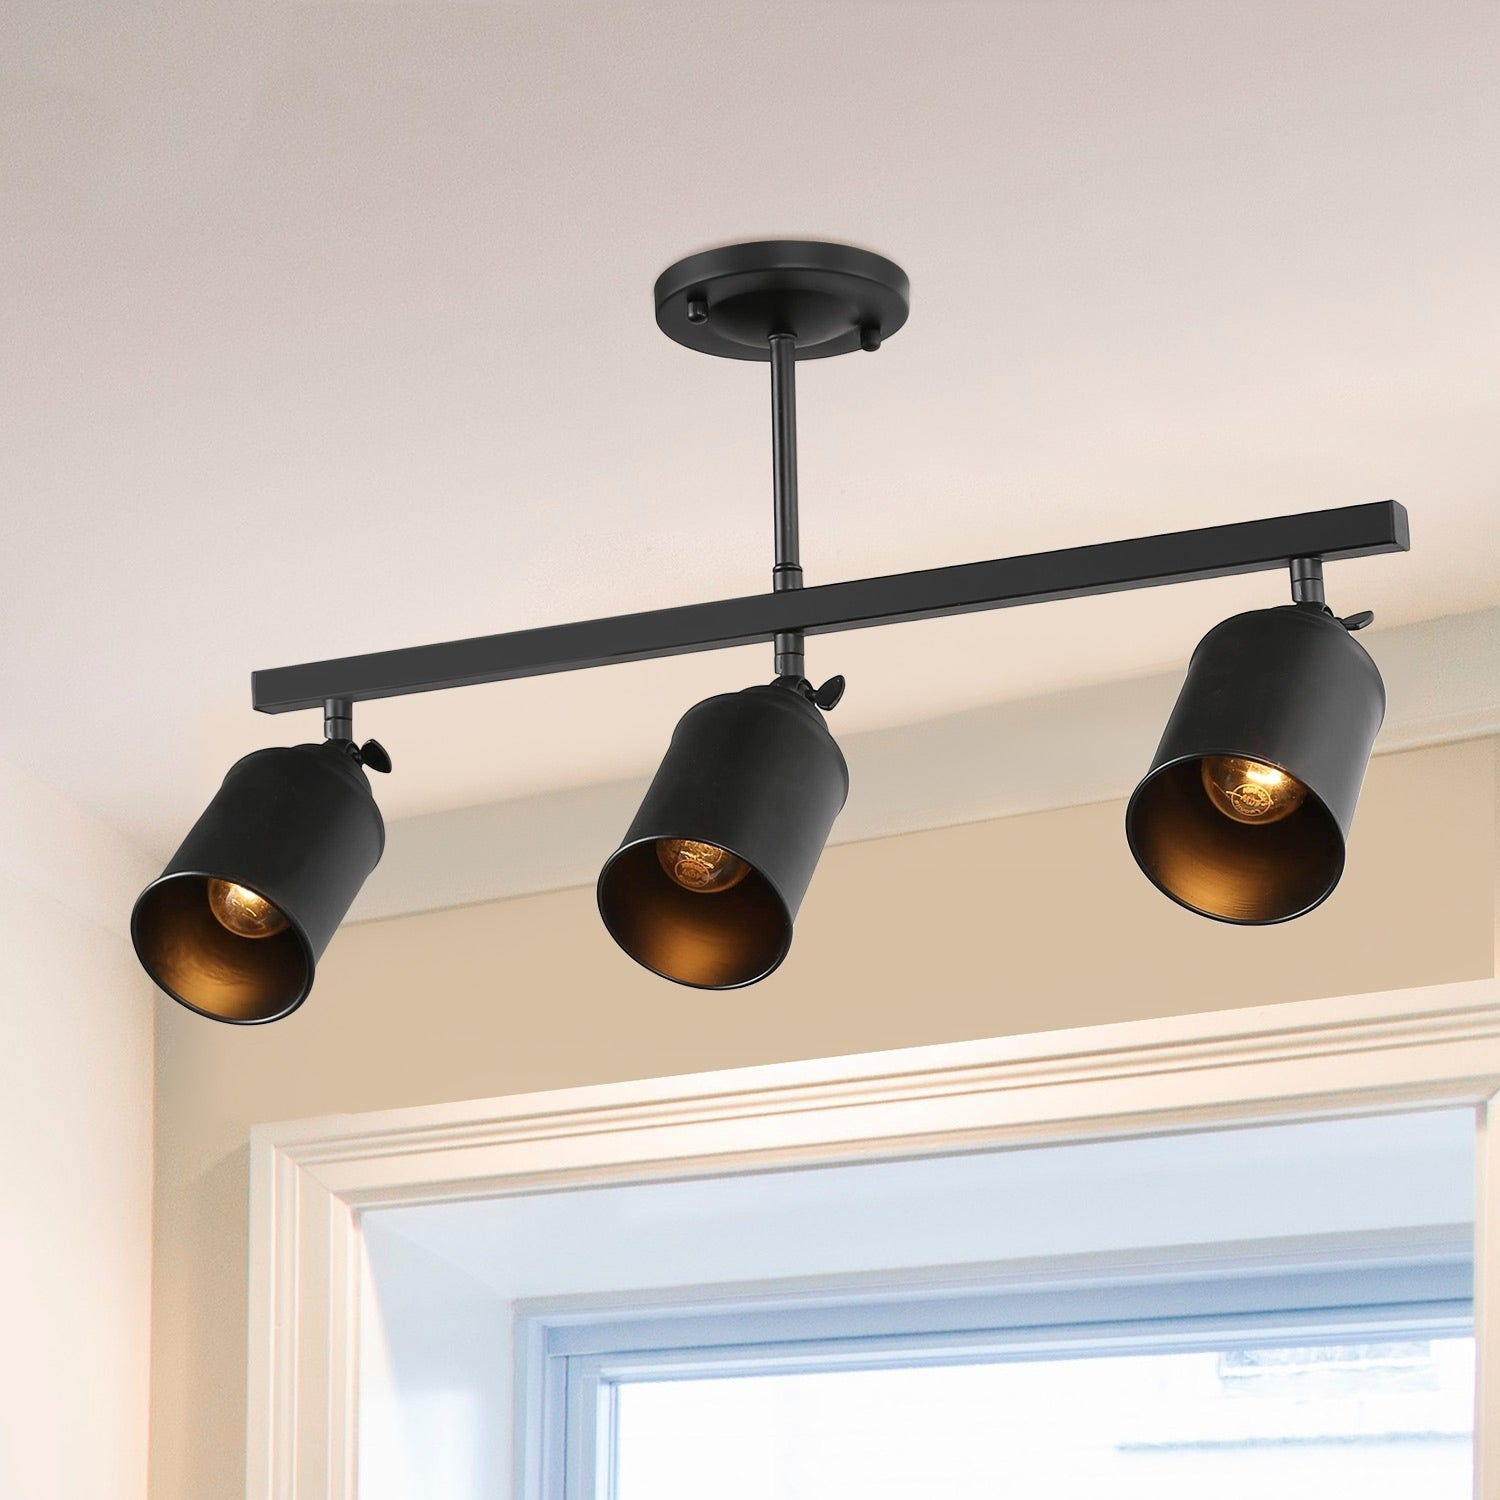 3 Lights Sportslight Flush Mount Ceiling Simple Tracking N A